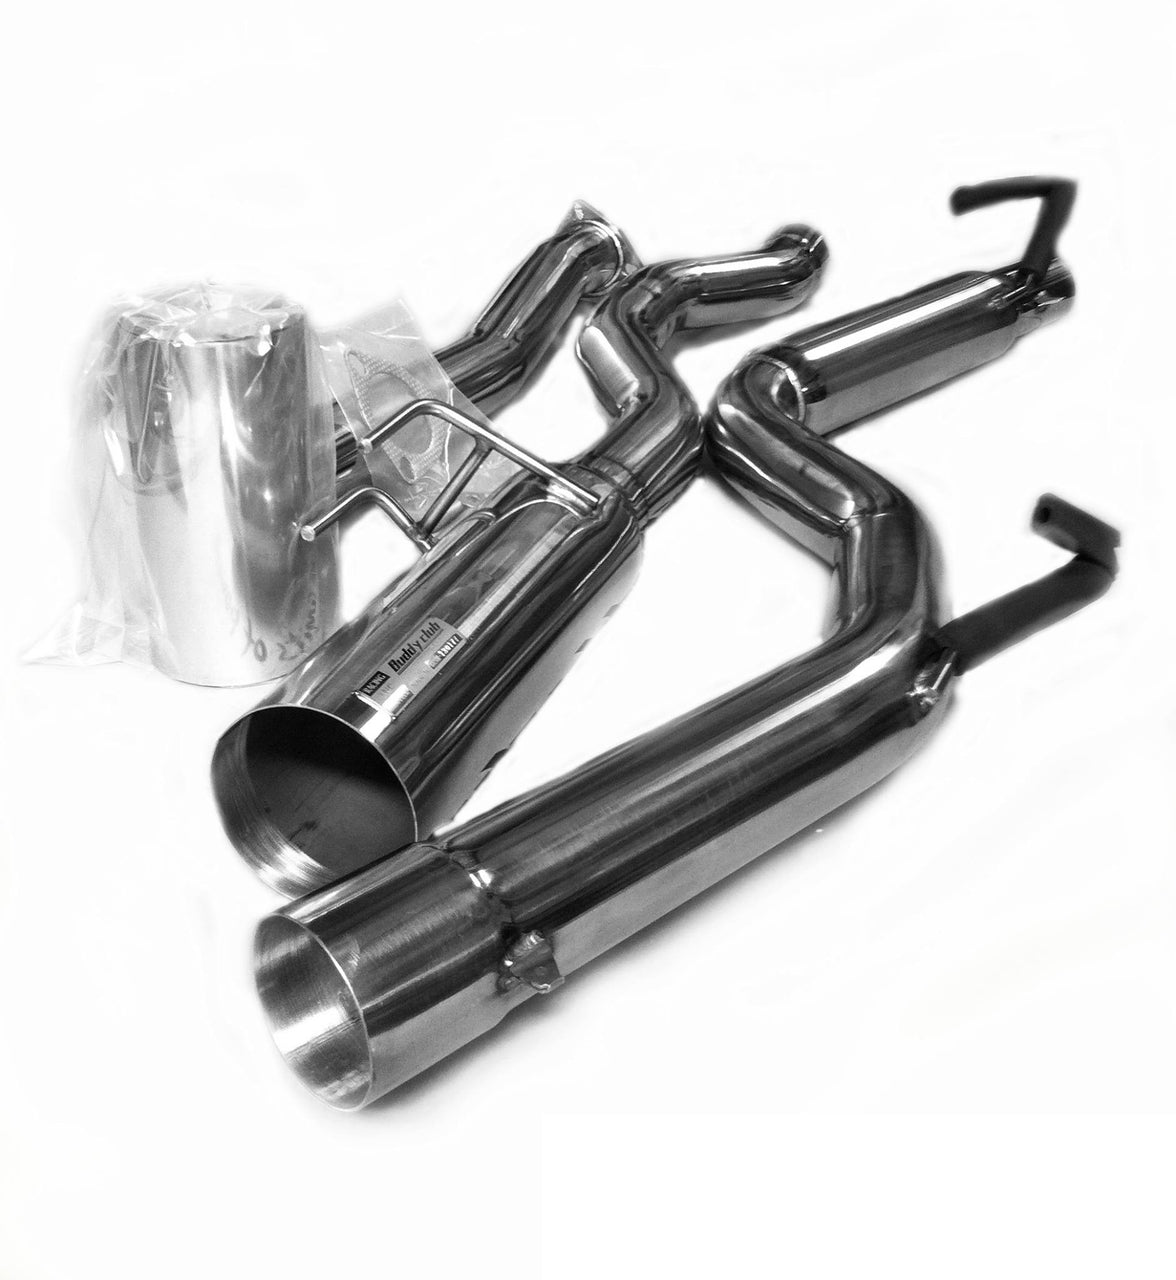 Buddy Club Spec II Exhaust System